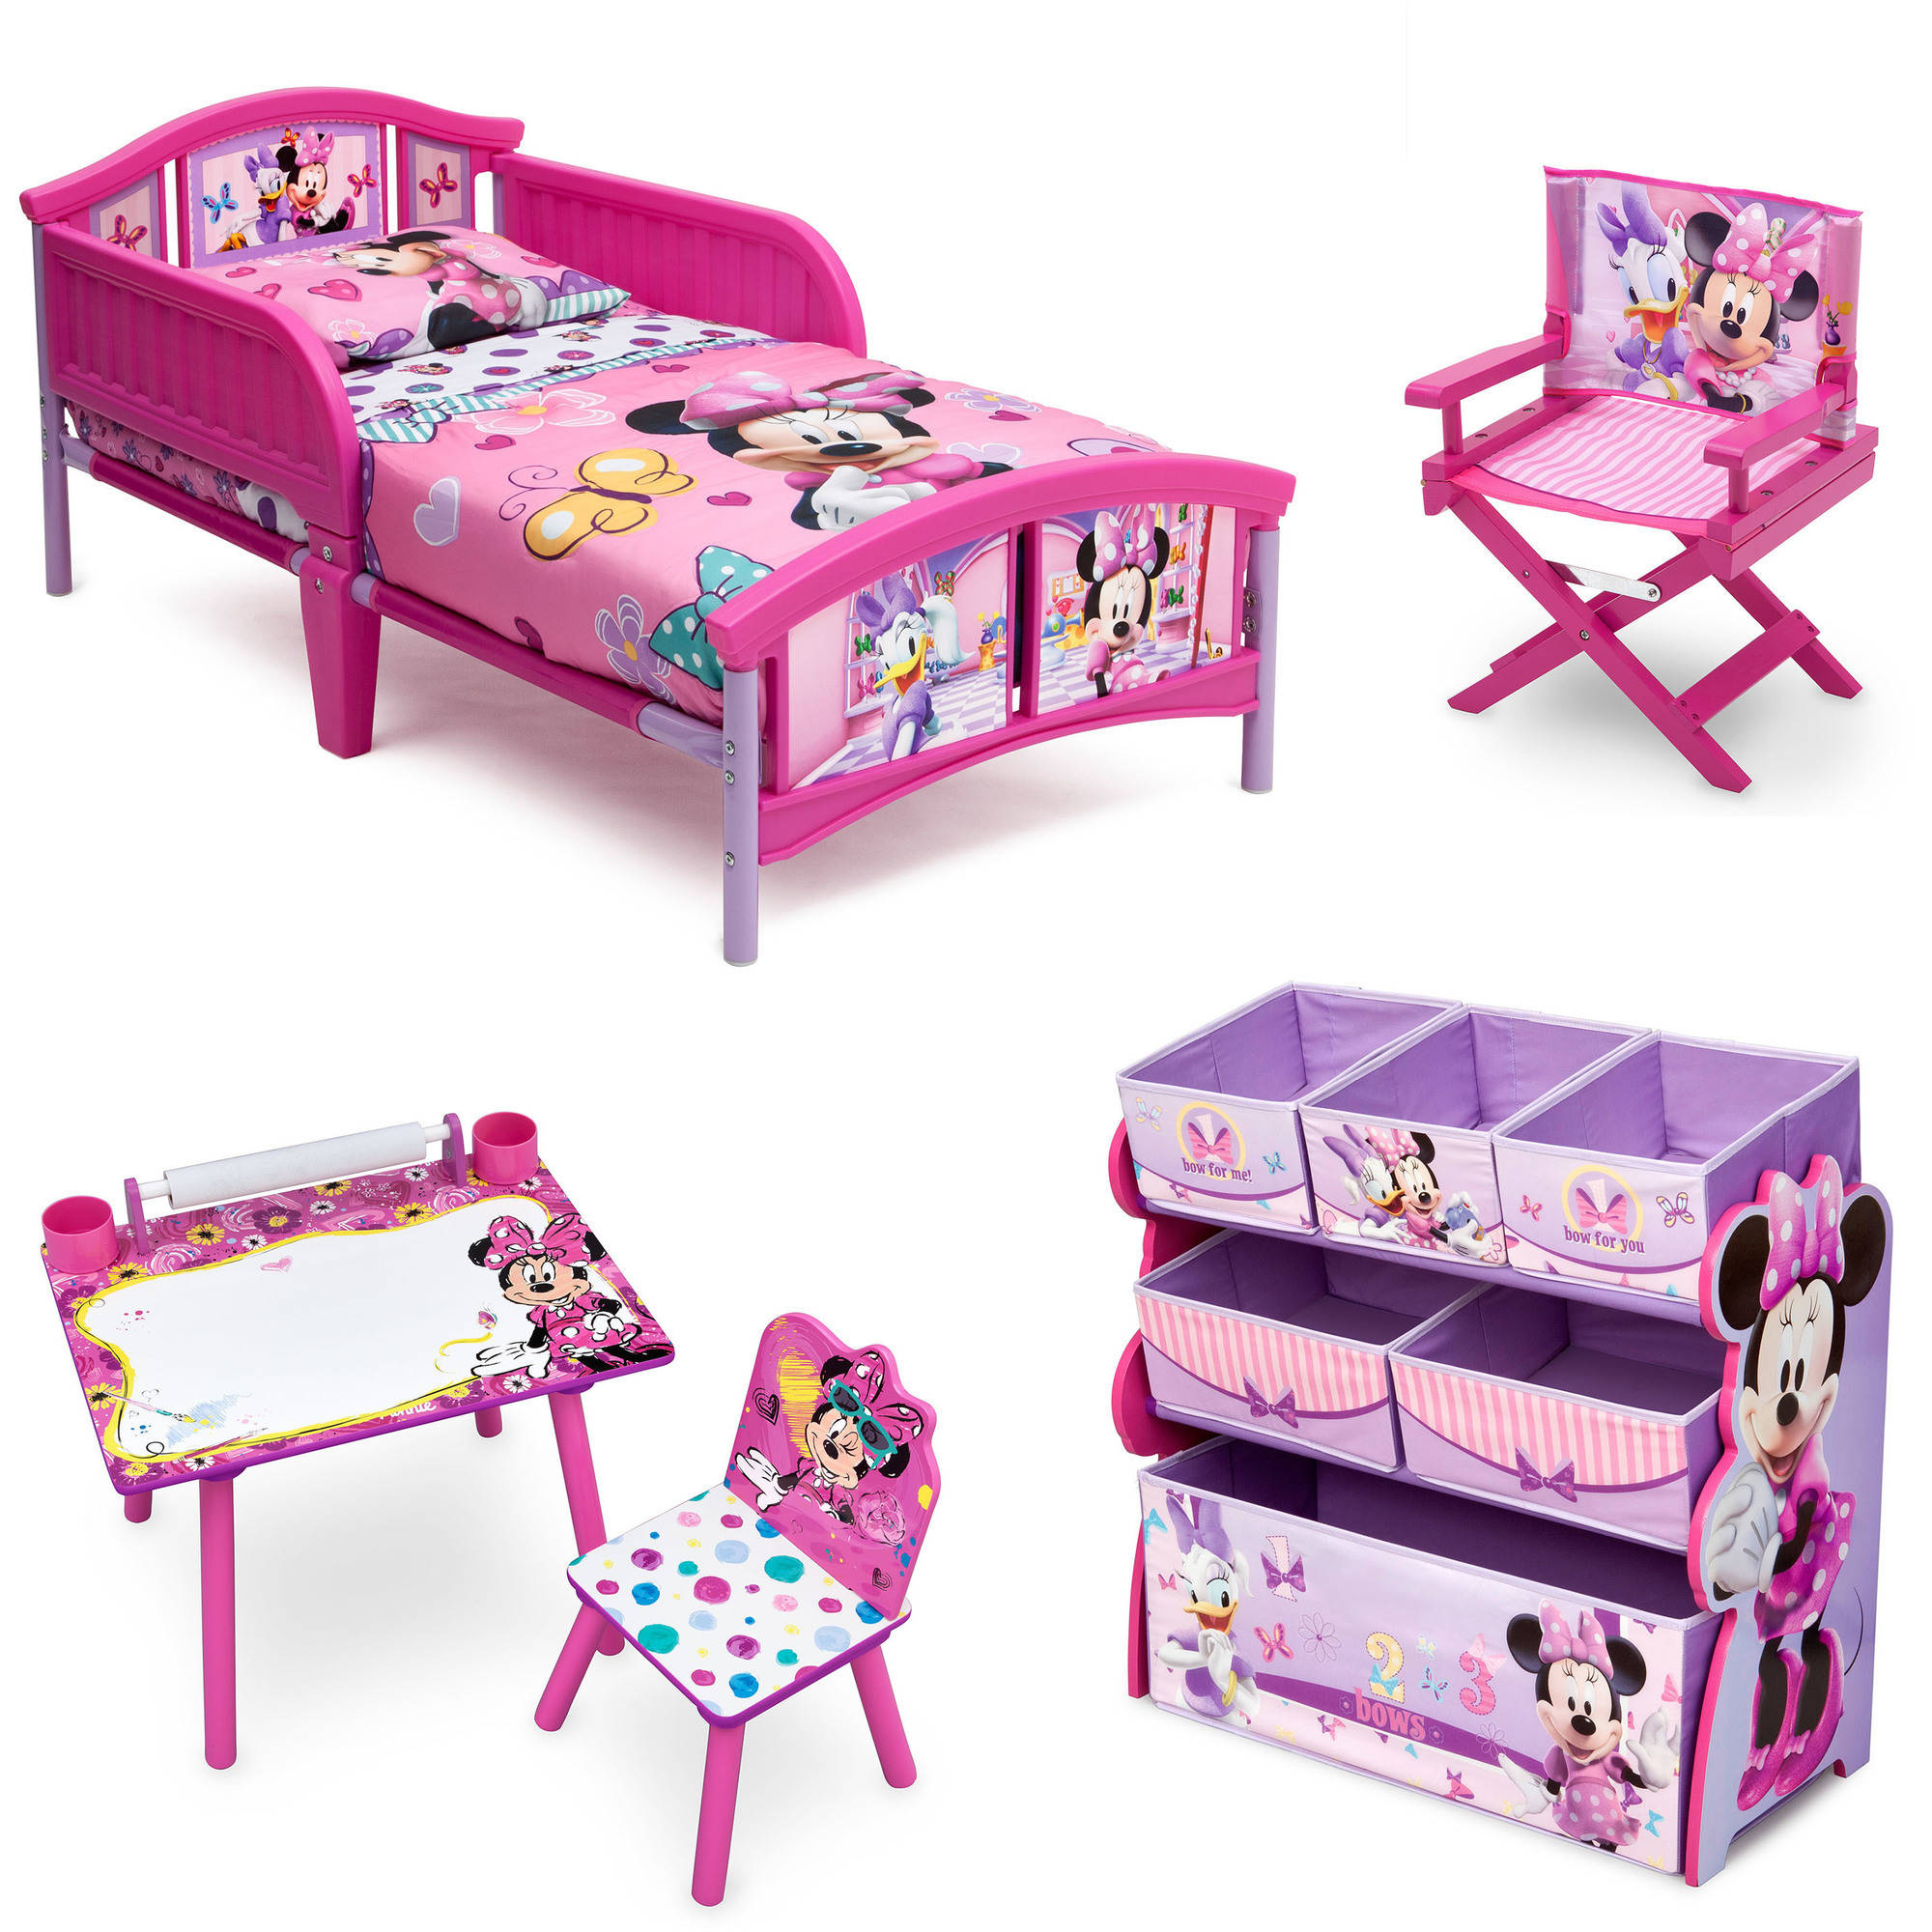 Disney Minnie Mouse Room In A Box With Bonus Chair